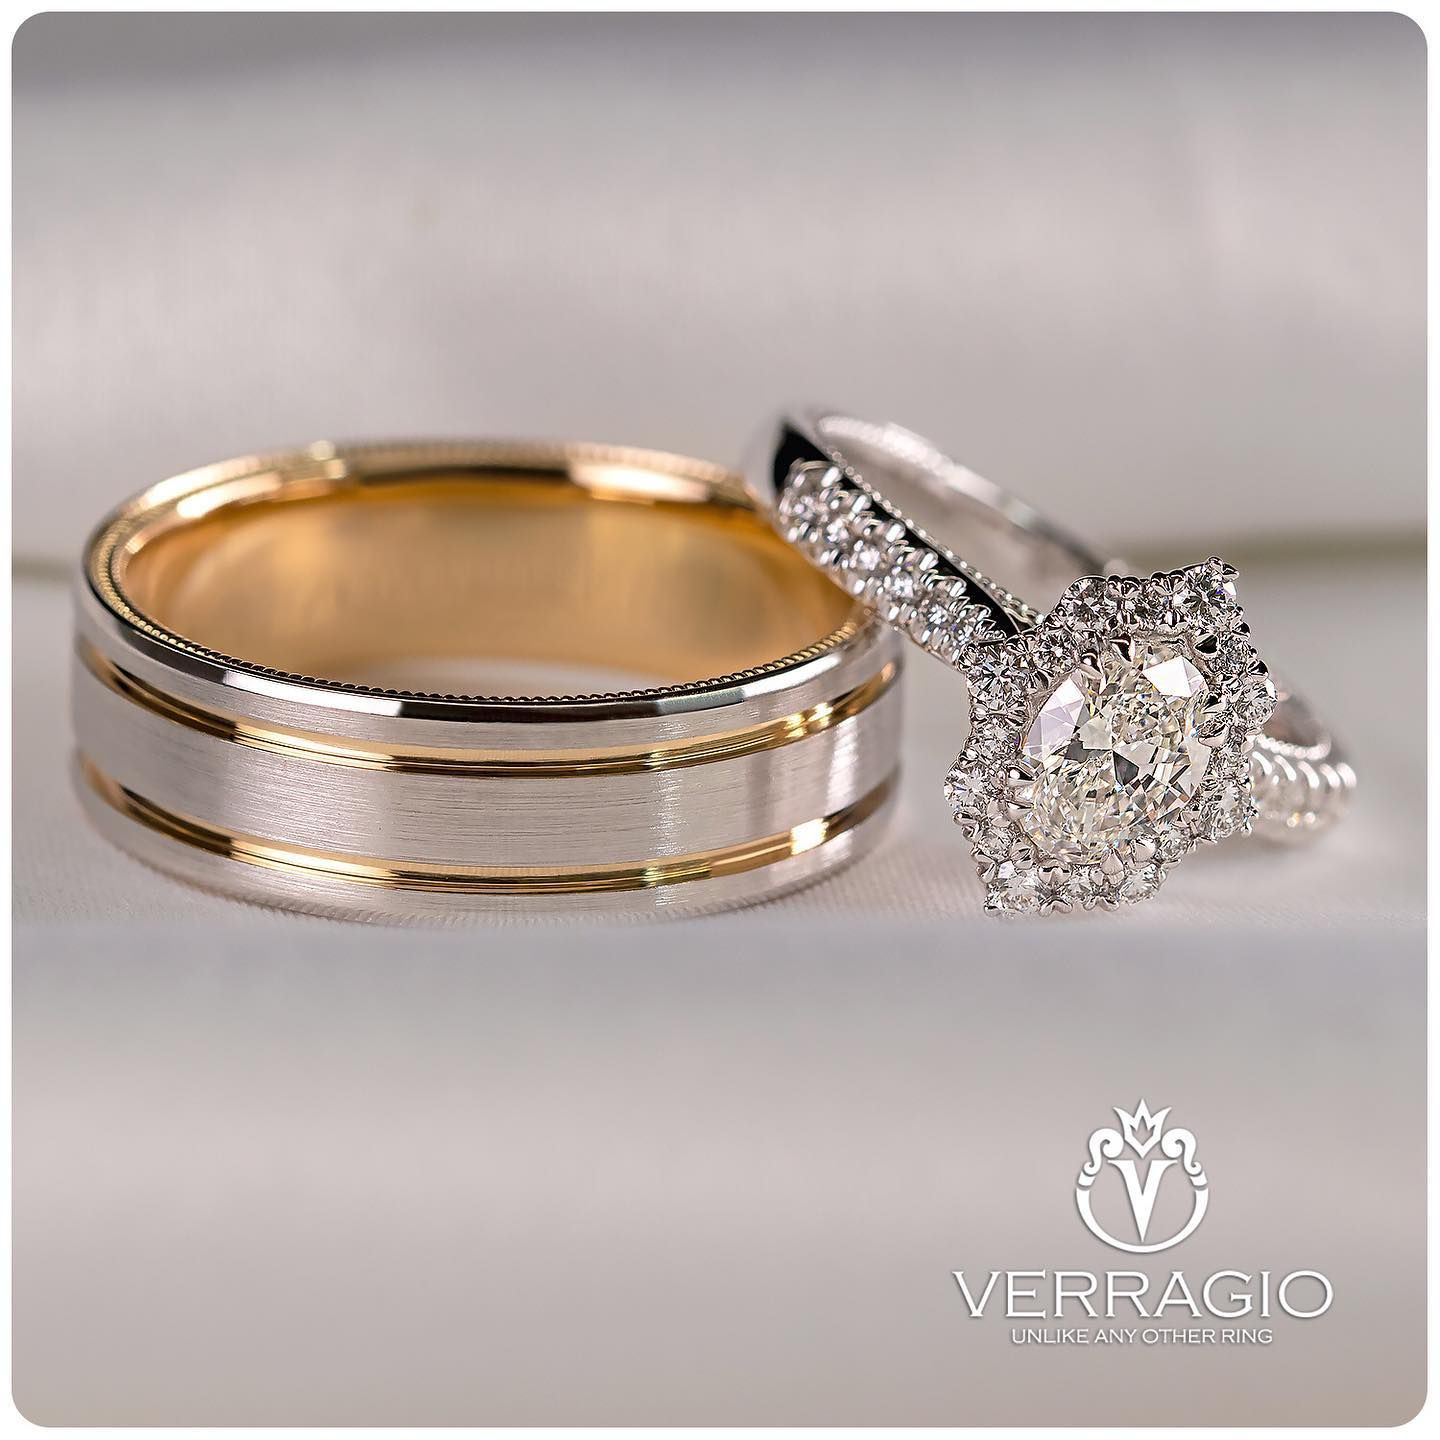 What S Better Than A Verragio Ring Saving On A Verragi Morganite Engagement Ring Vintage Unique Engagement Rings Rose Gold Vintage Engagement Rings Unique